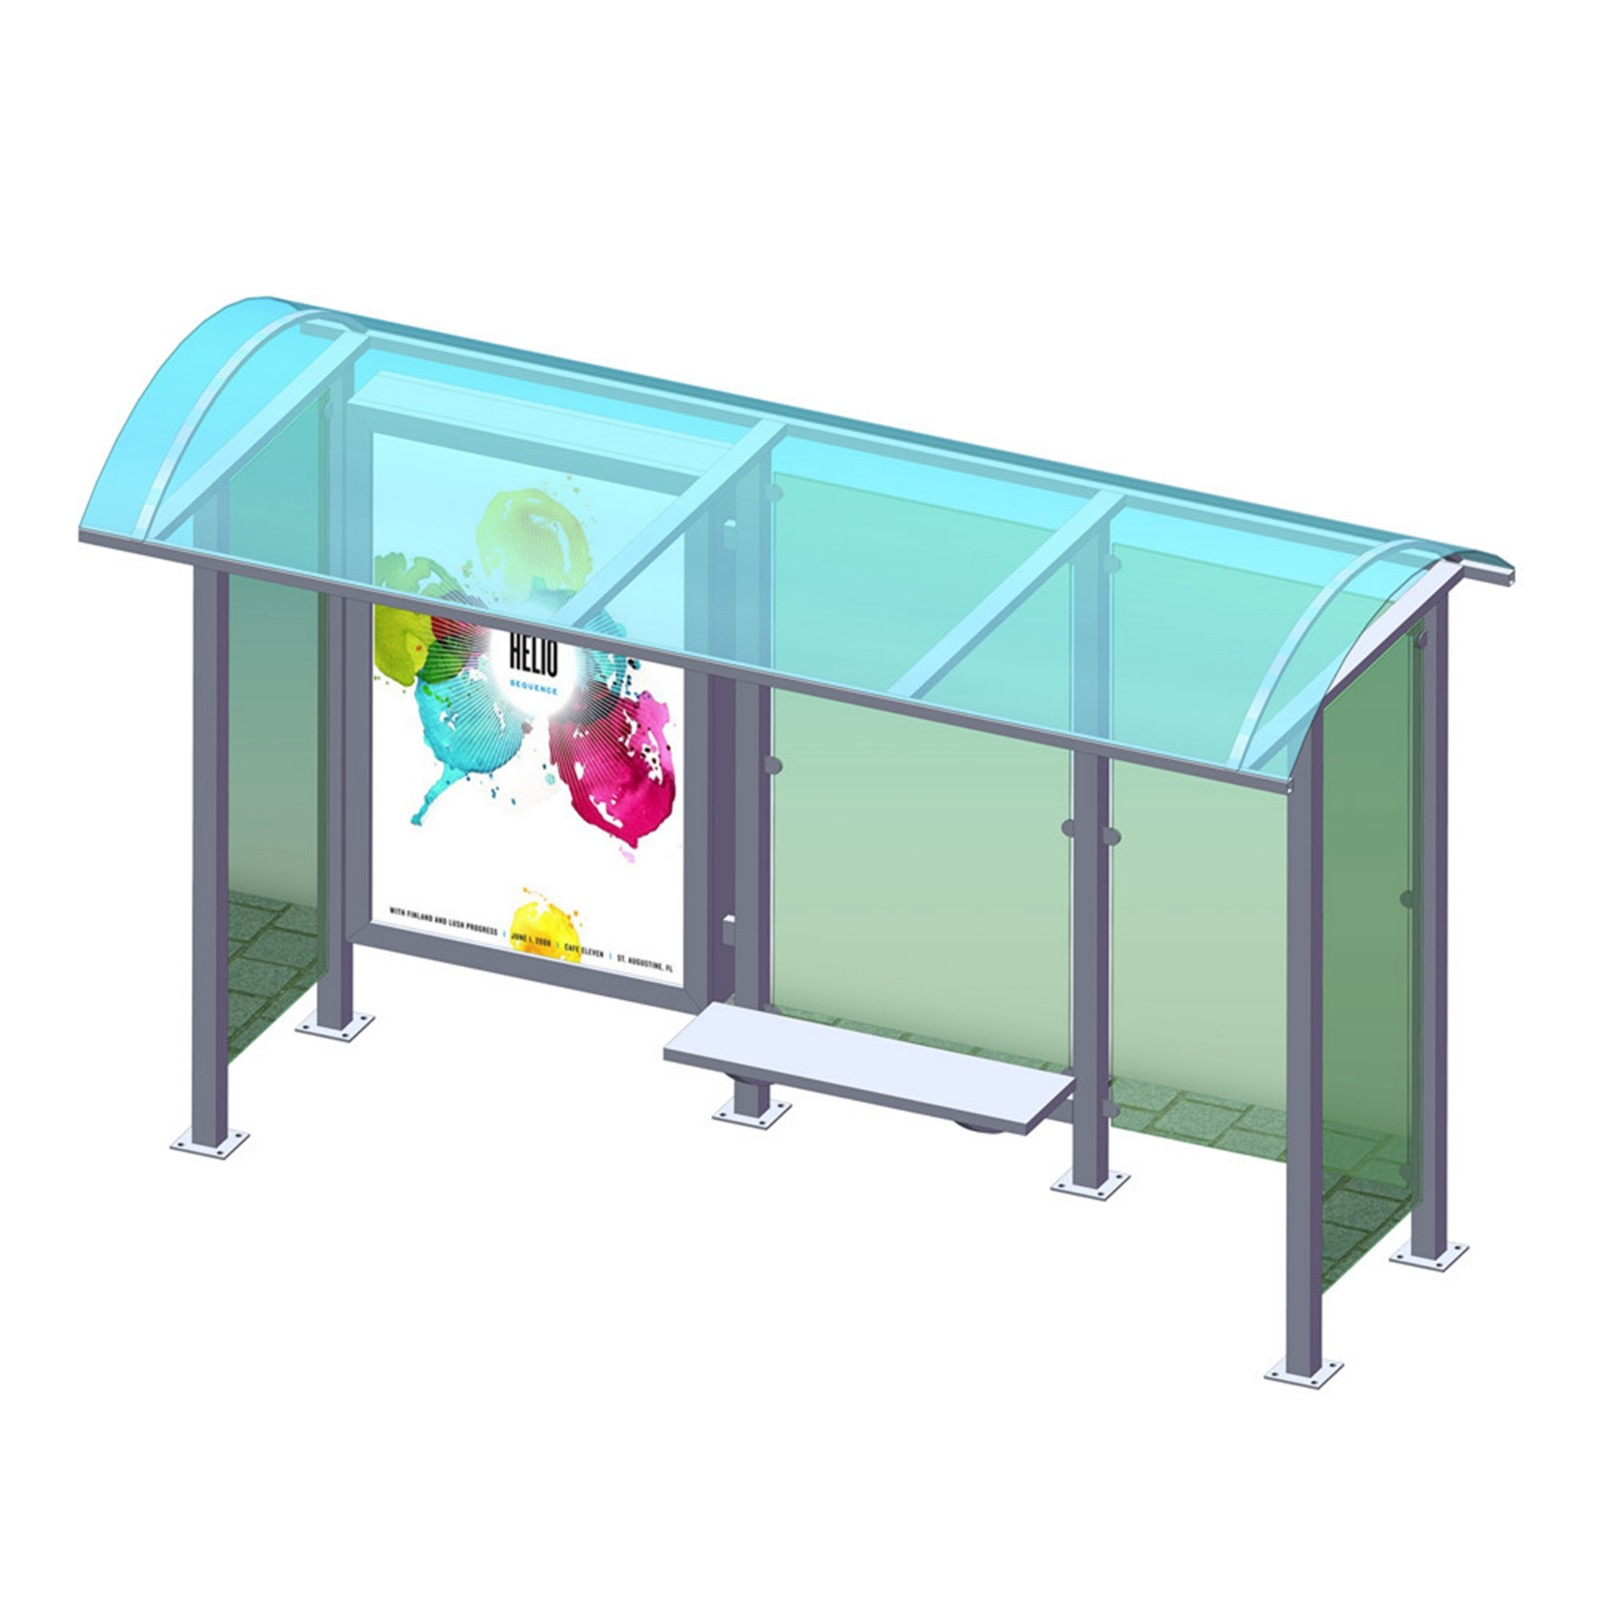 YEROO-Find Bus Stop Advertising Outdoor Advertising Bus Stop Shelter Manufacturer